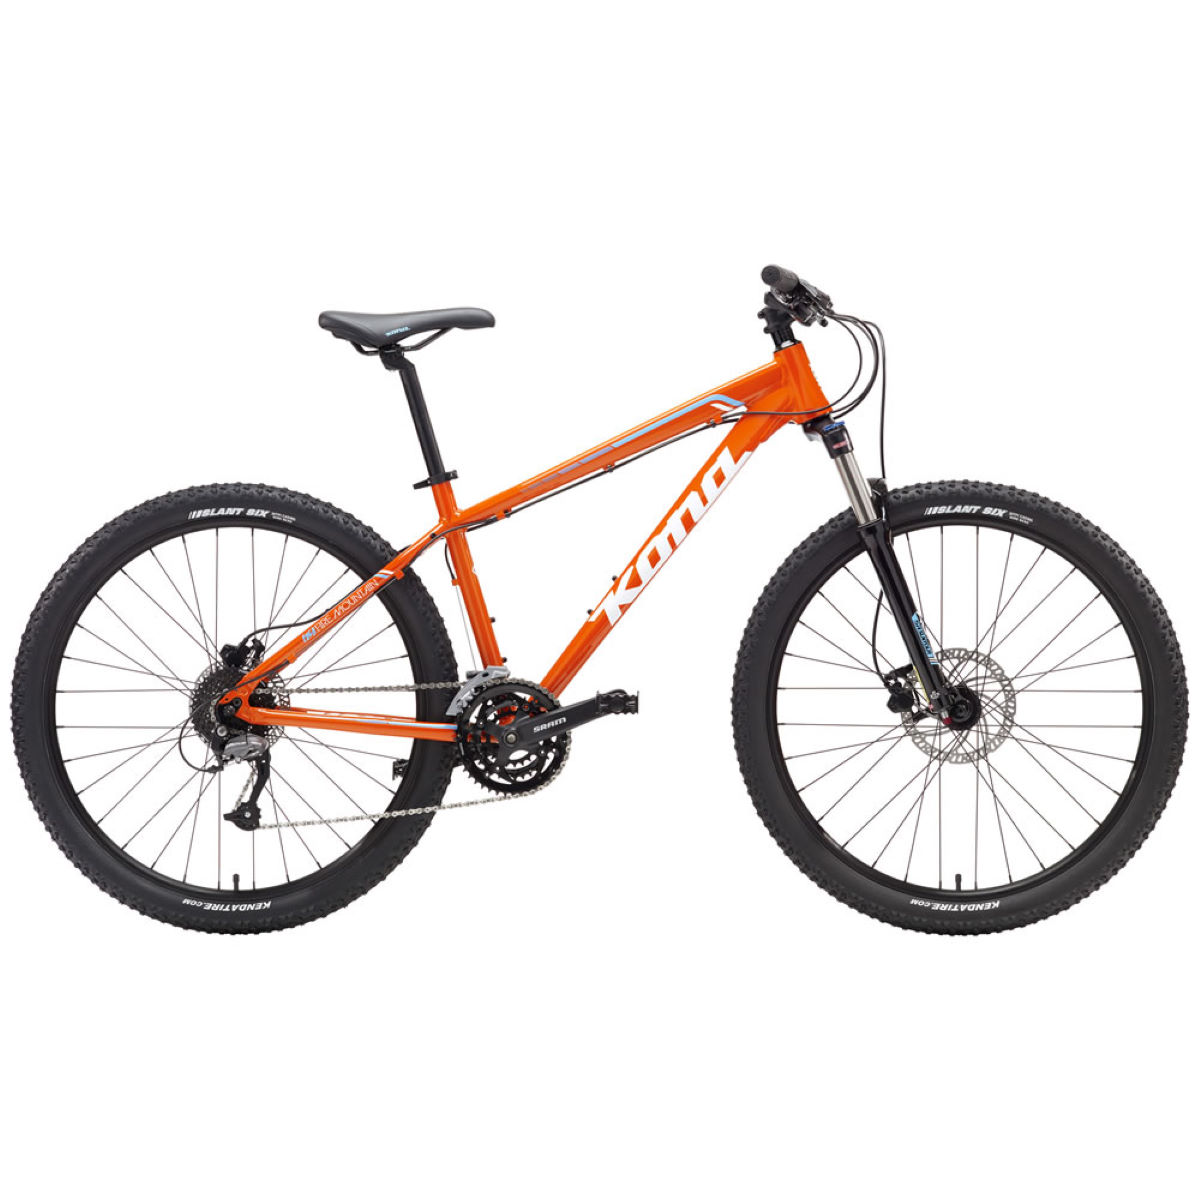 VTT Kona Fire Mountain (2017) - S Orange VTT semi-rigides